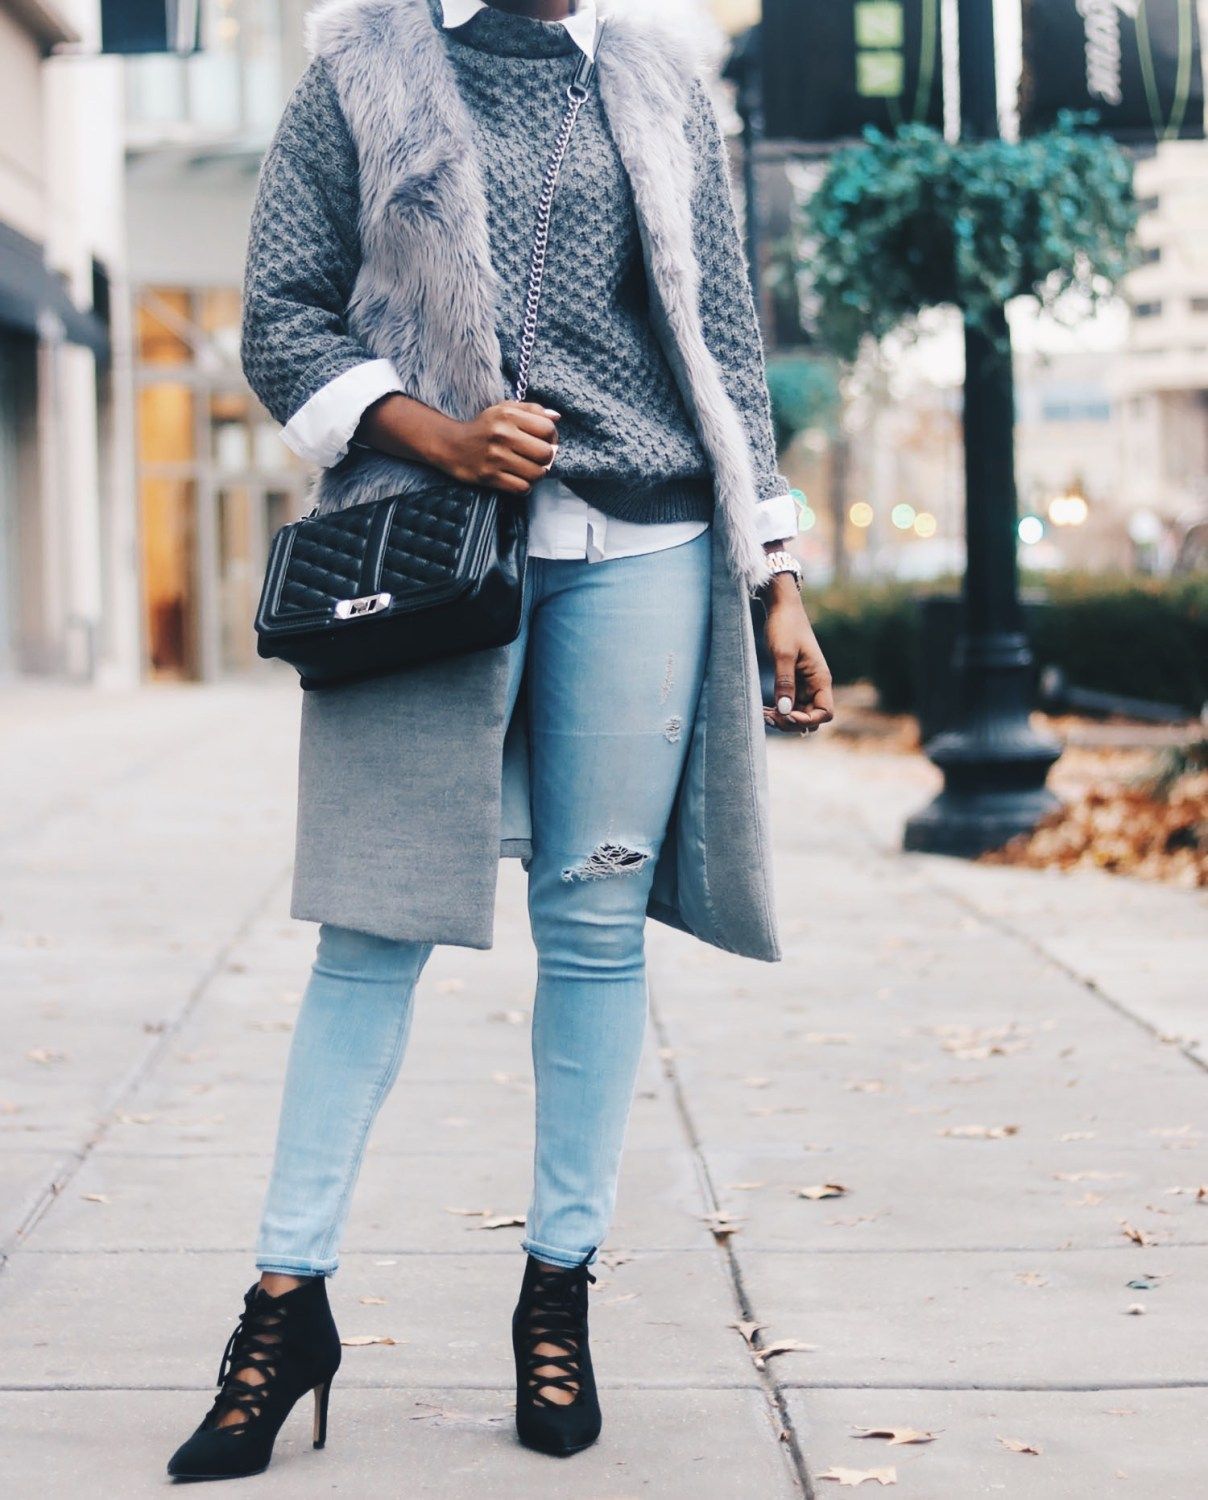 style-synopsis-casual-winter-looks